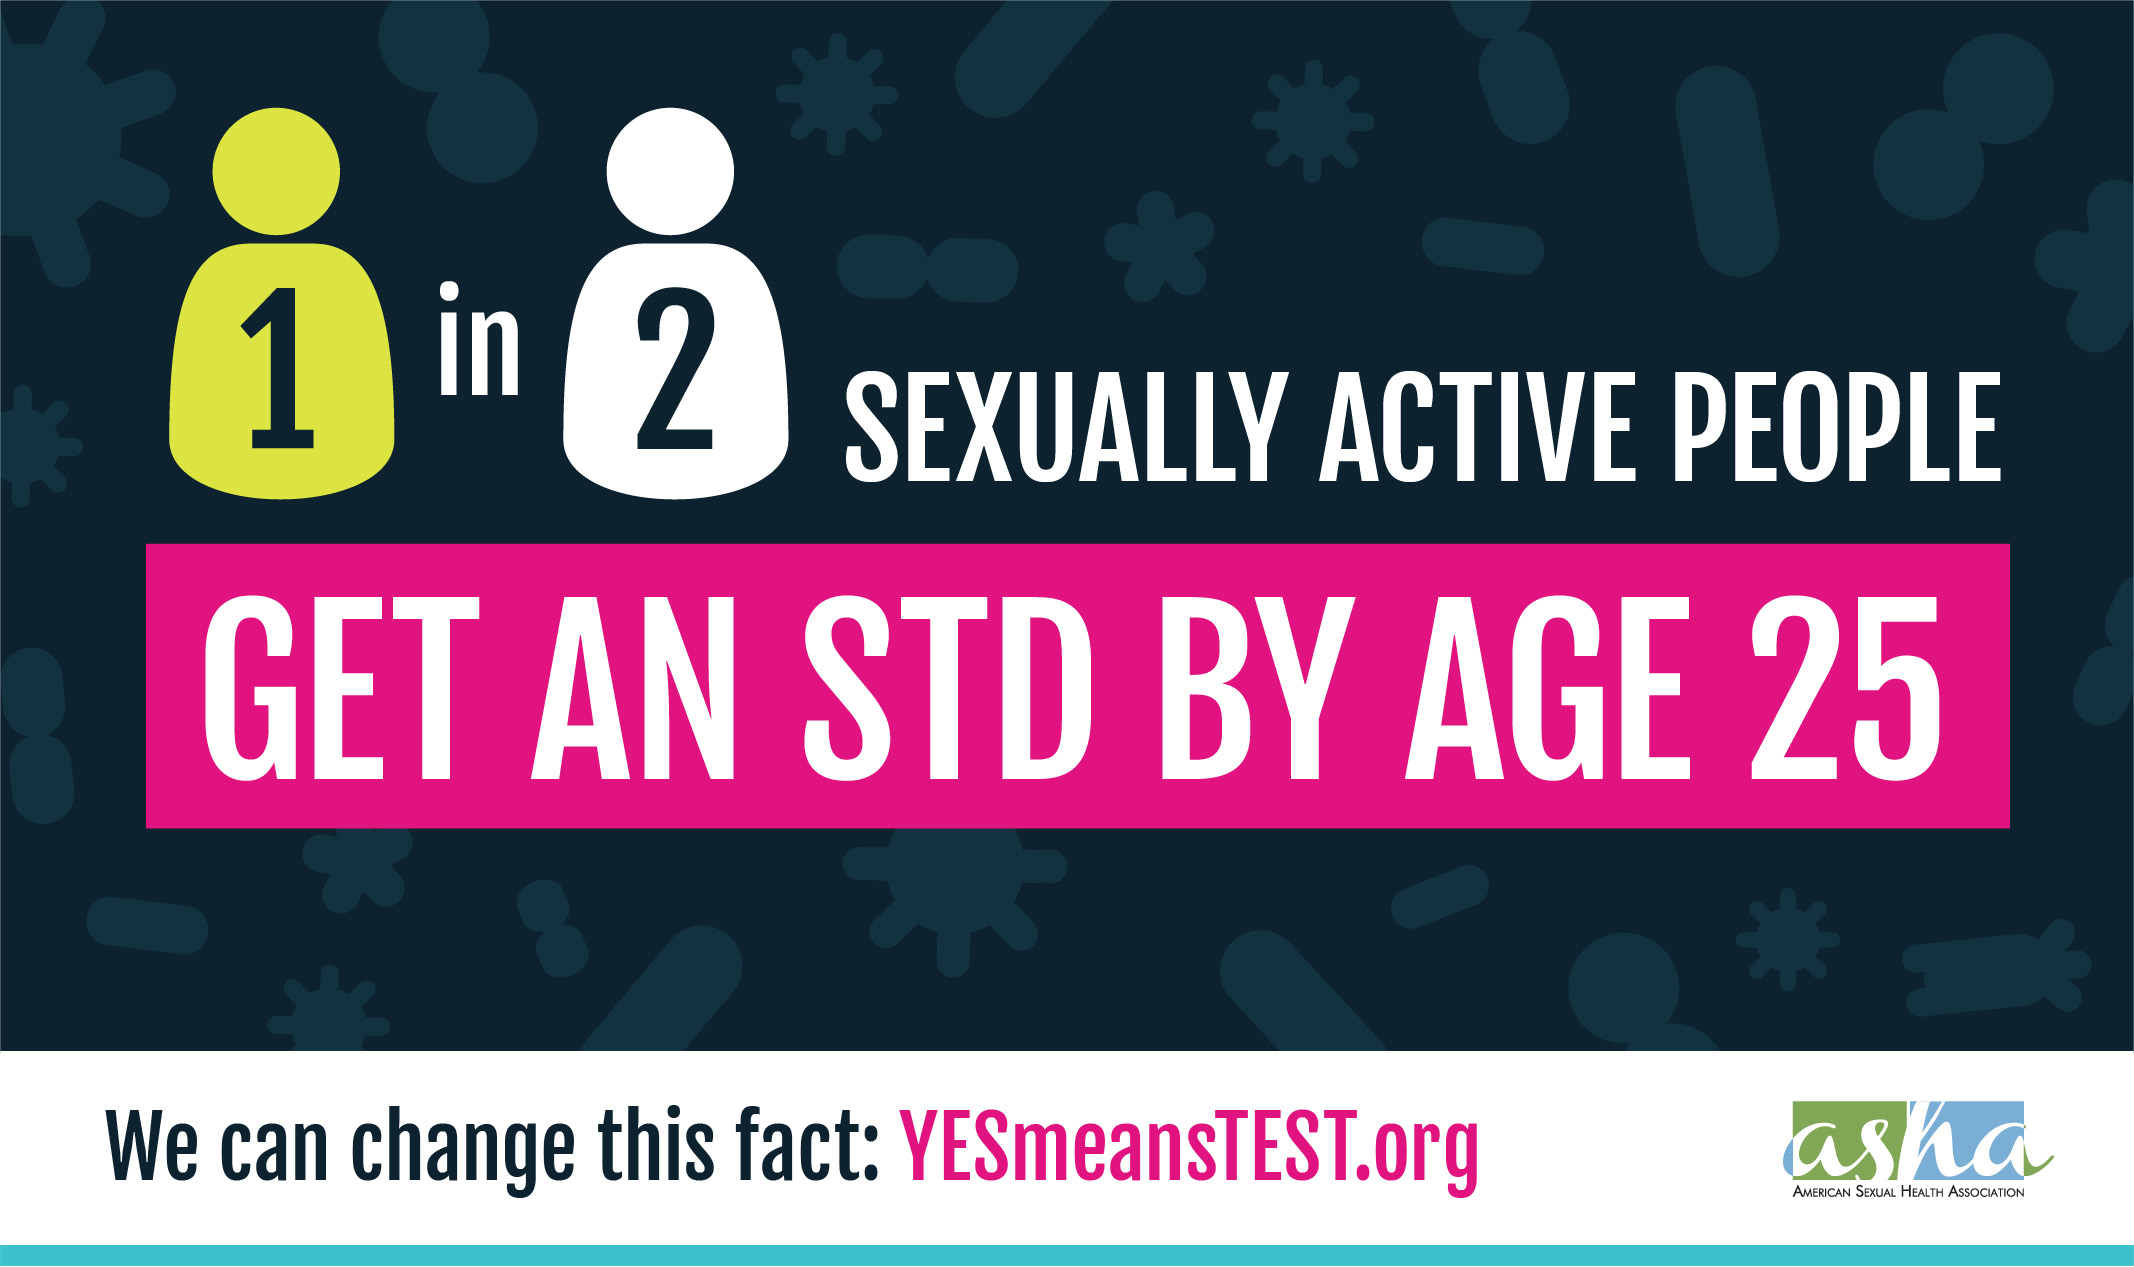 STDs are on the rise nationally - including chlamydia and gonorrhea - yet screening rates remain low, especially among young adults.